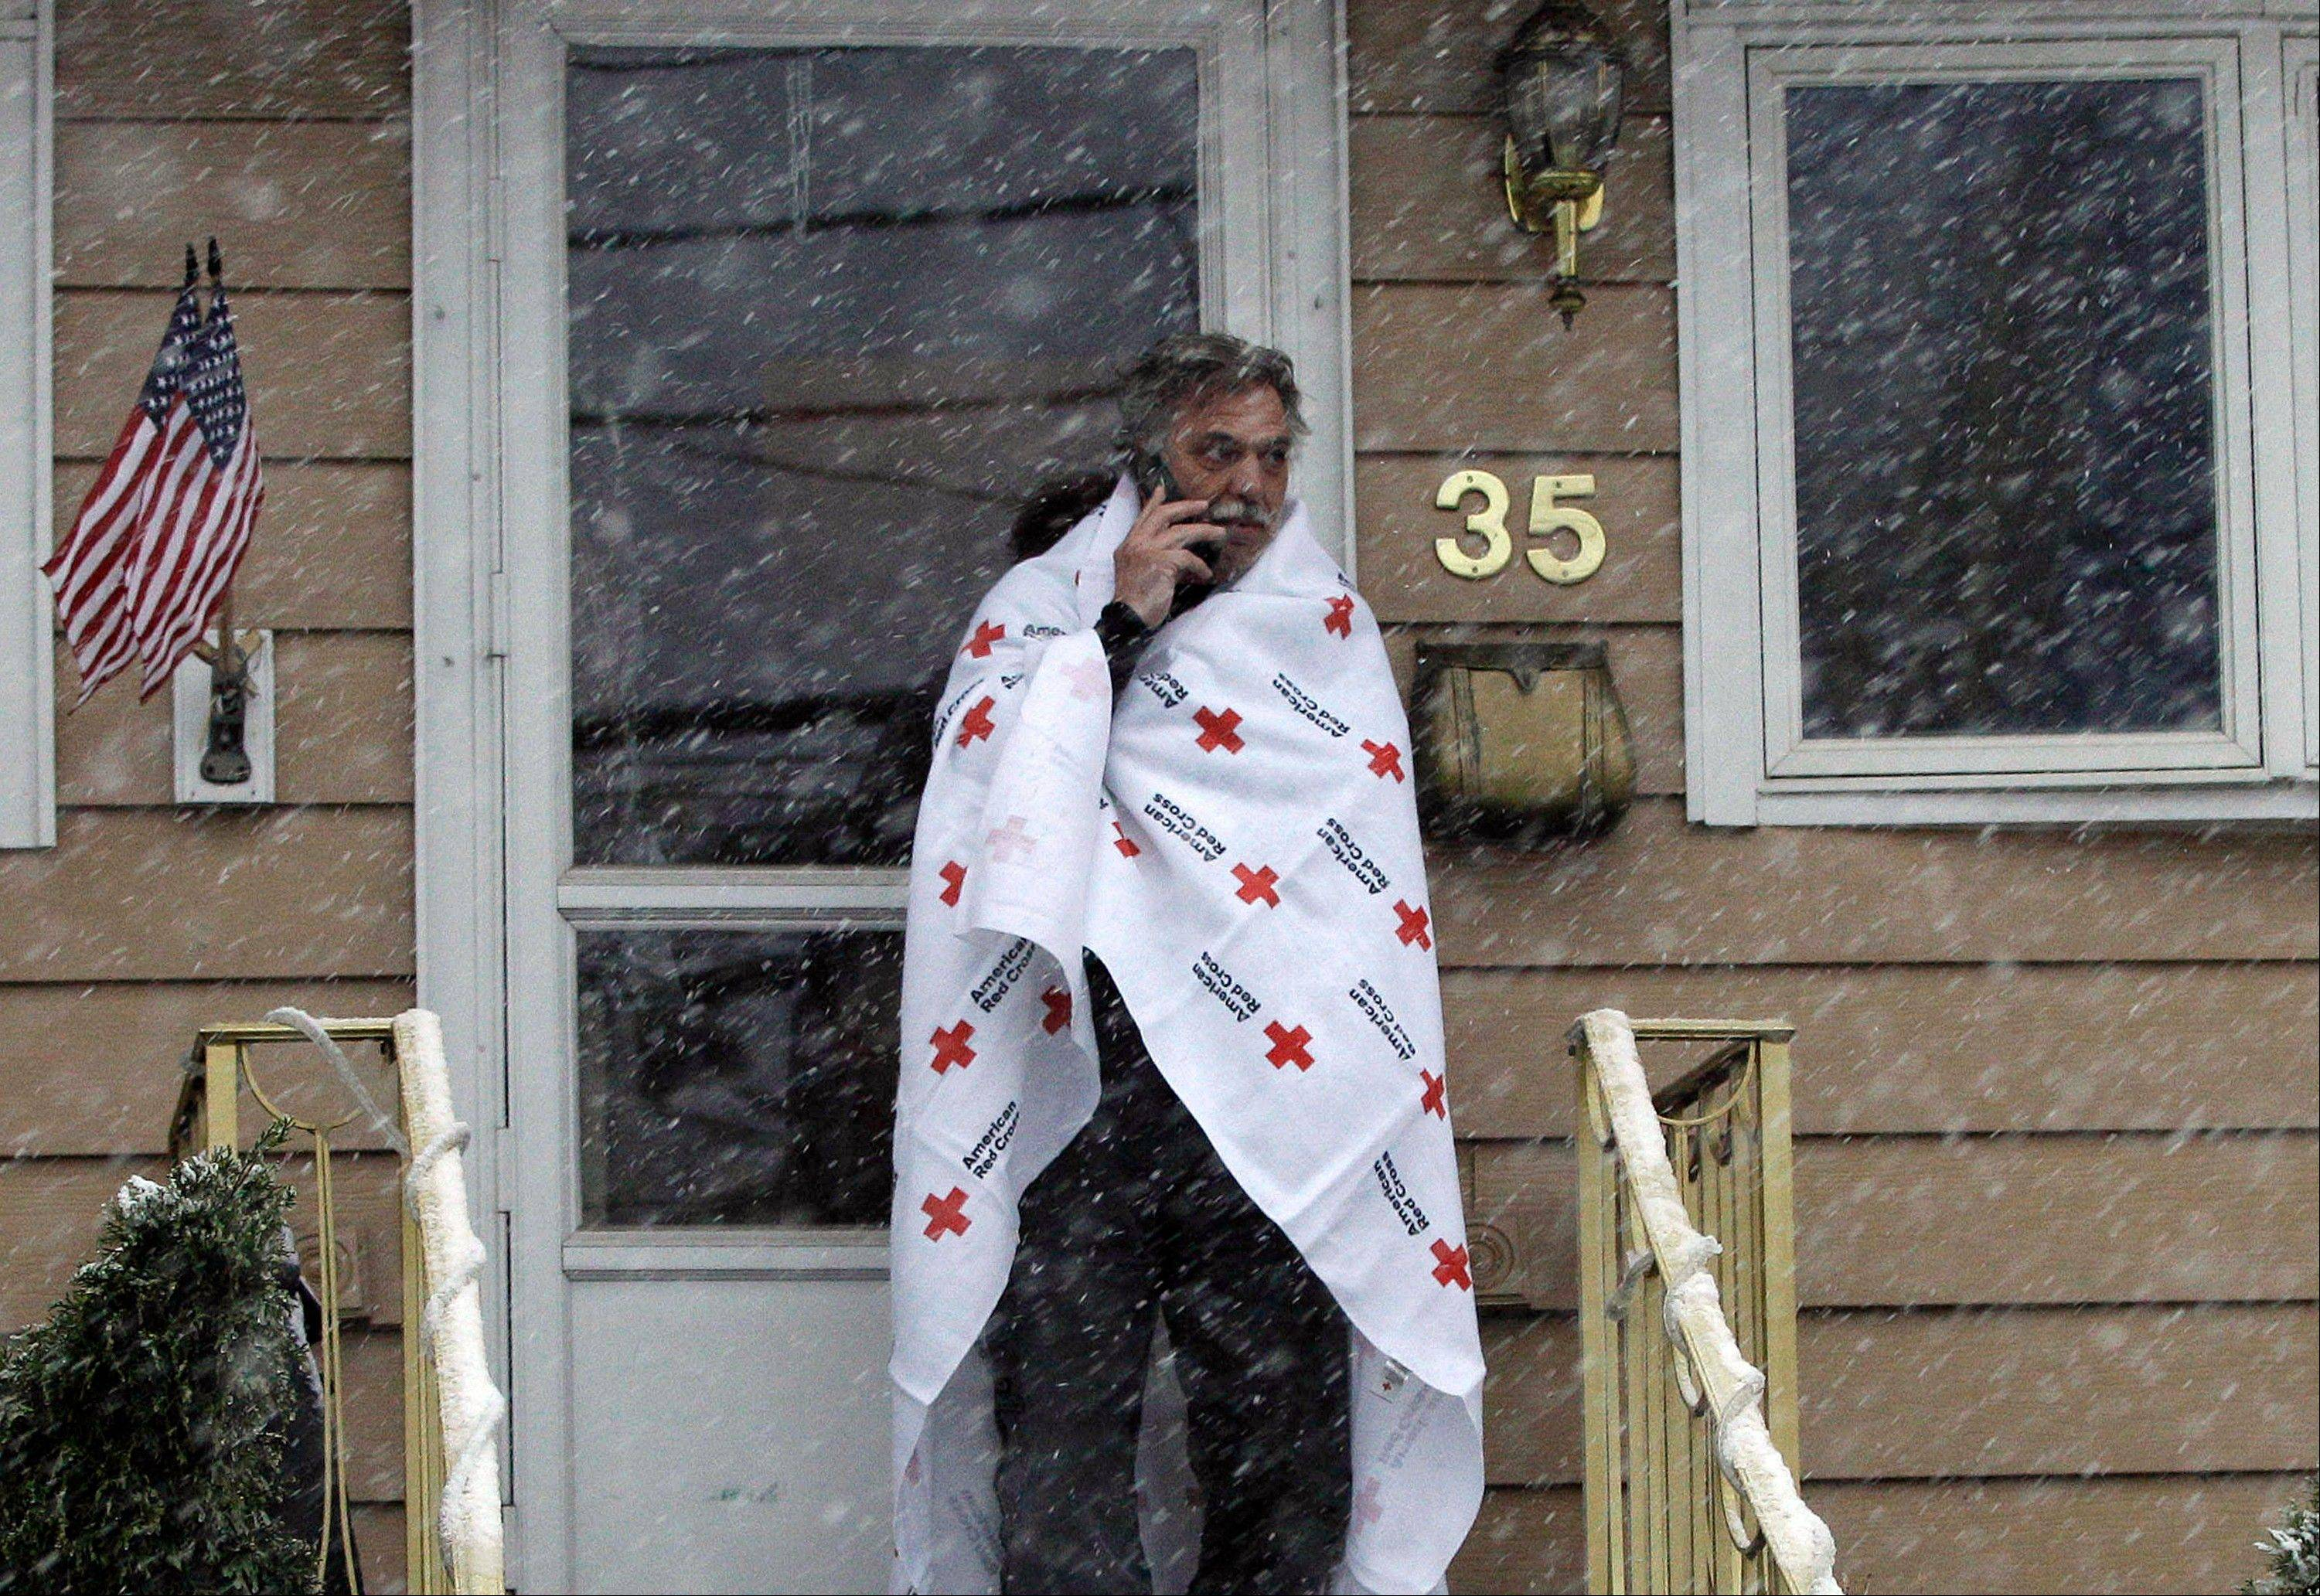 Ben Colontonio talks on his cellphone wrapped in a blanket donated by the American Red Cross as a Nor'easter approaches in the wake of Superstorm Sandy, Wednesday, Nov. 7, 2012, in Little Ferry, N.J.